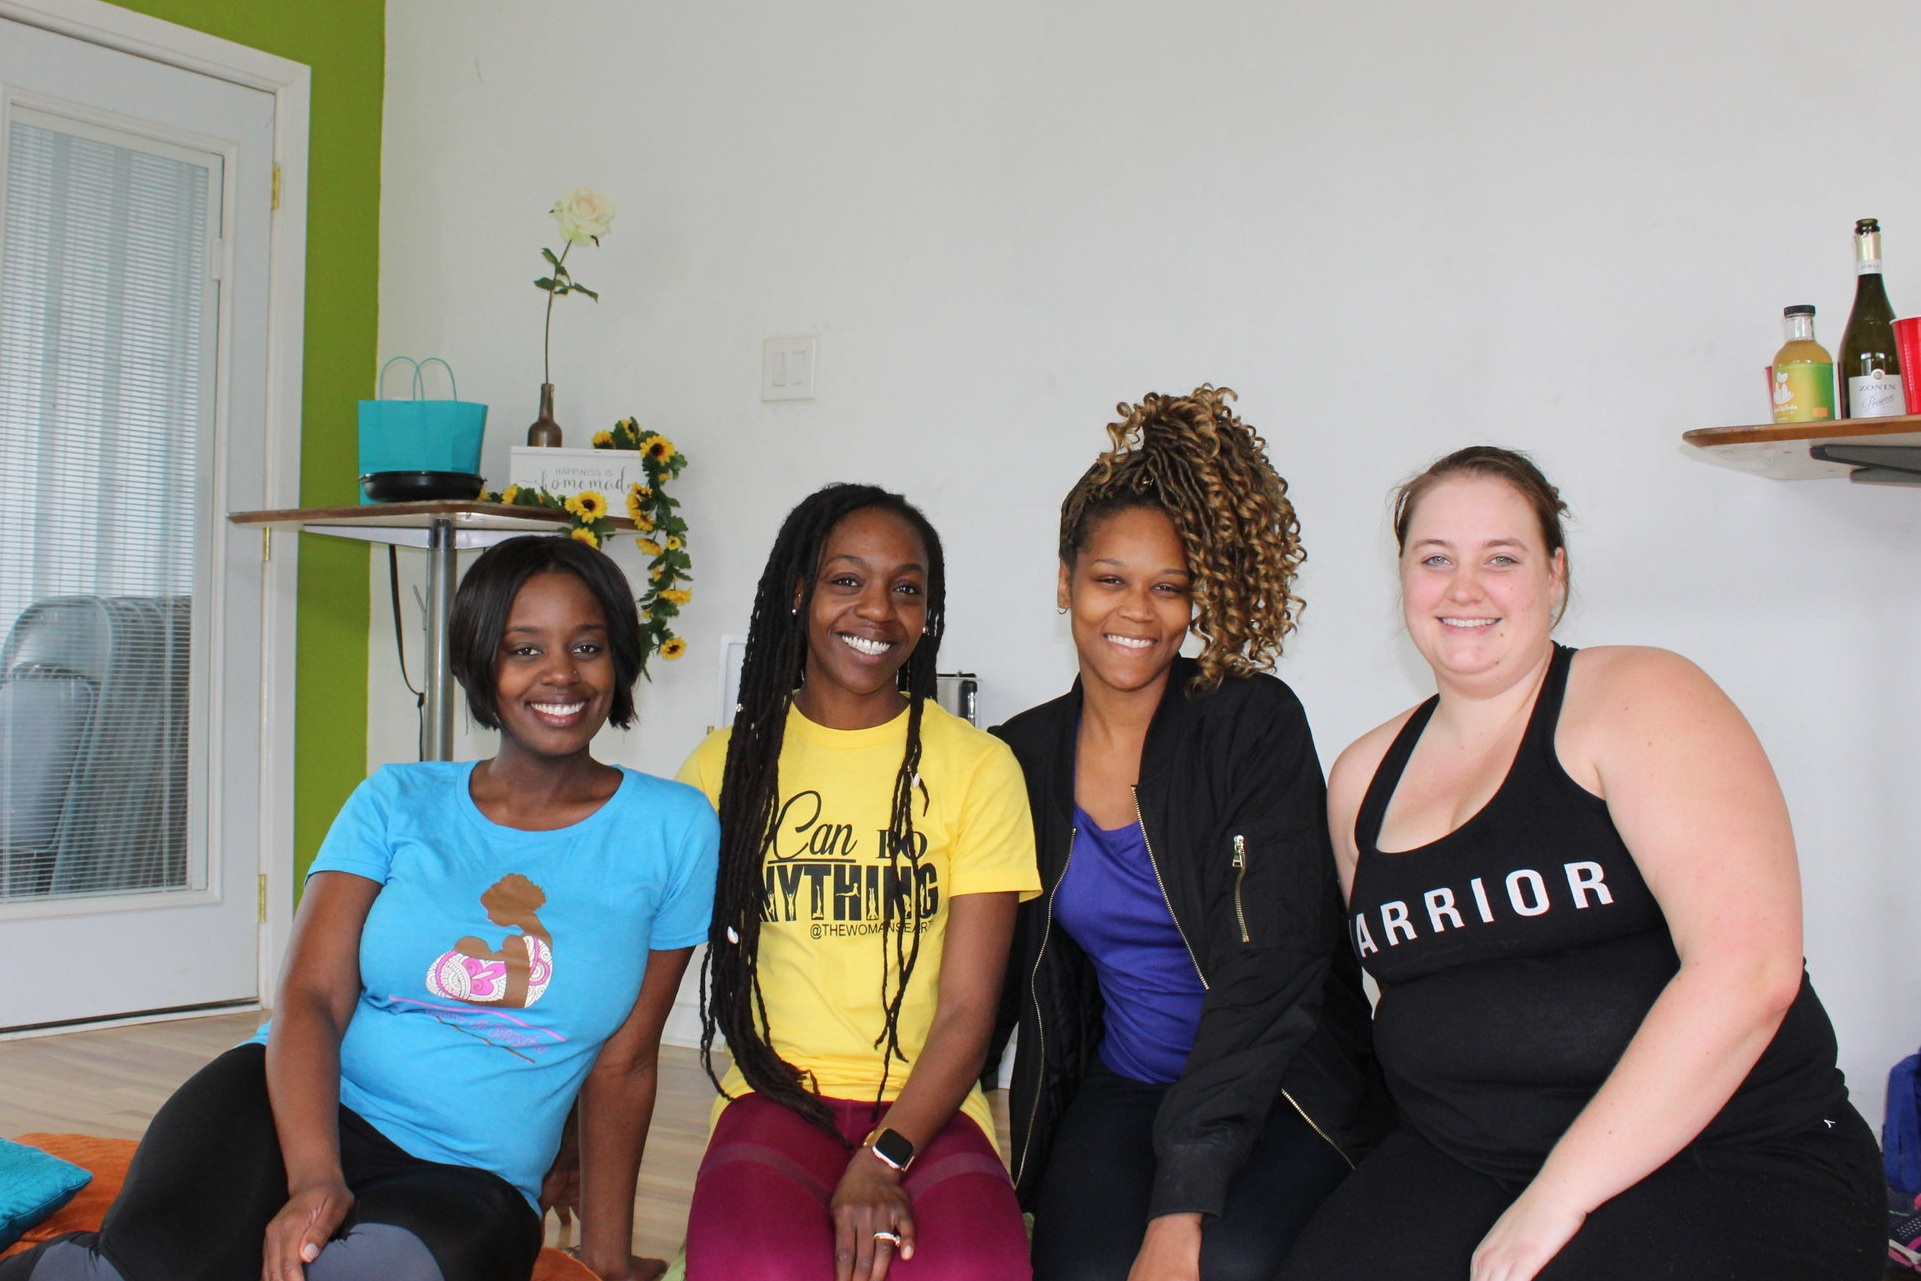 Afternoon of Connections hosted on March 30th, 2019. Our FIRST event! (One attendee missing)